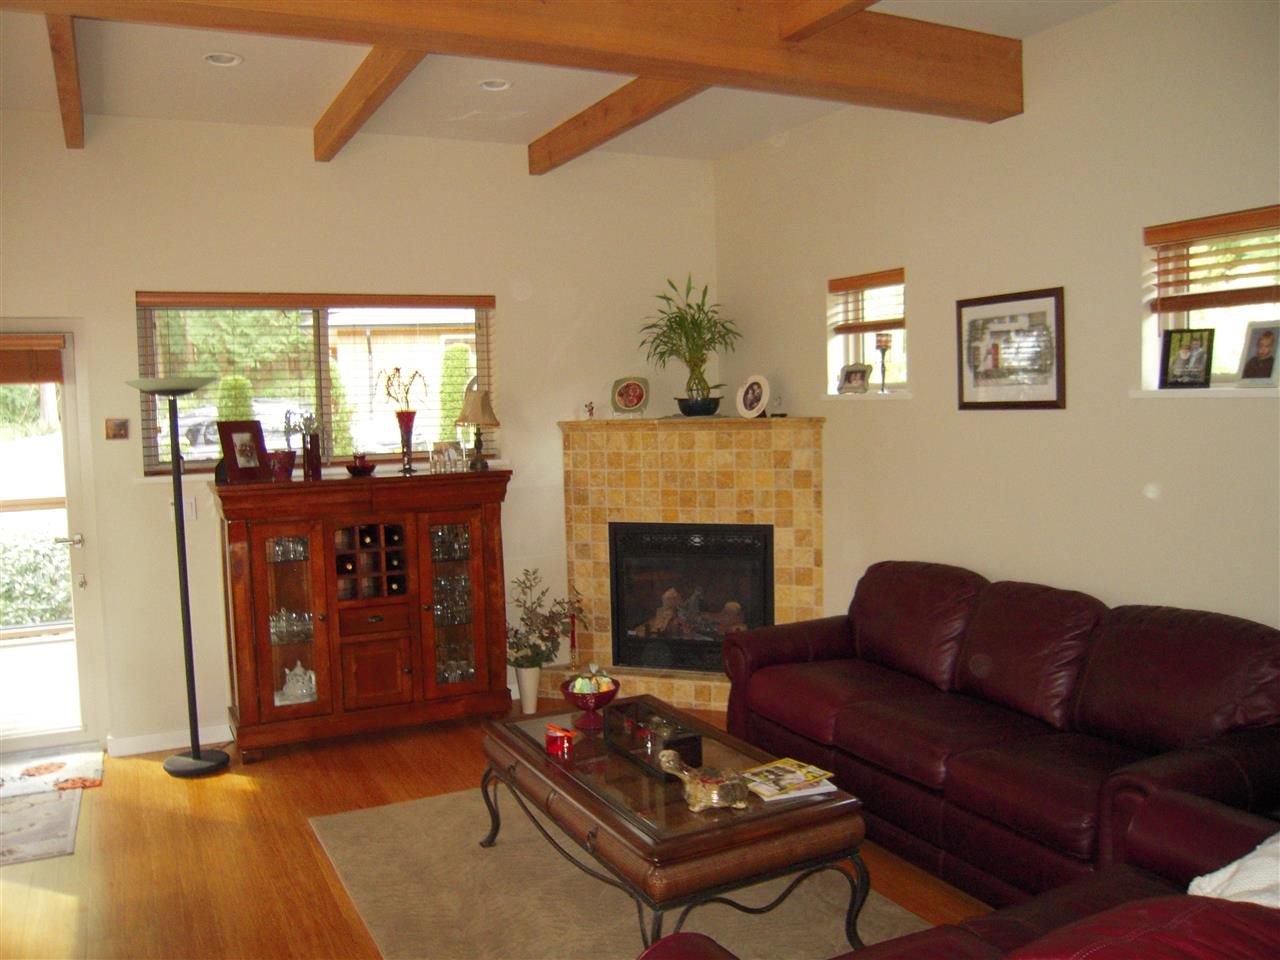 Photo 3: Photos: 5447 WAKEFIELD Road in Sechelt: Sechelt District House for sale (Sunshine Coast)  : MLS®# R2047962